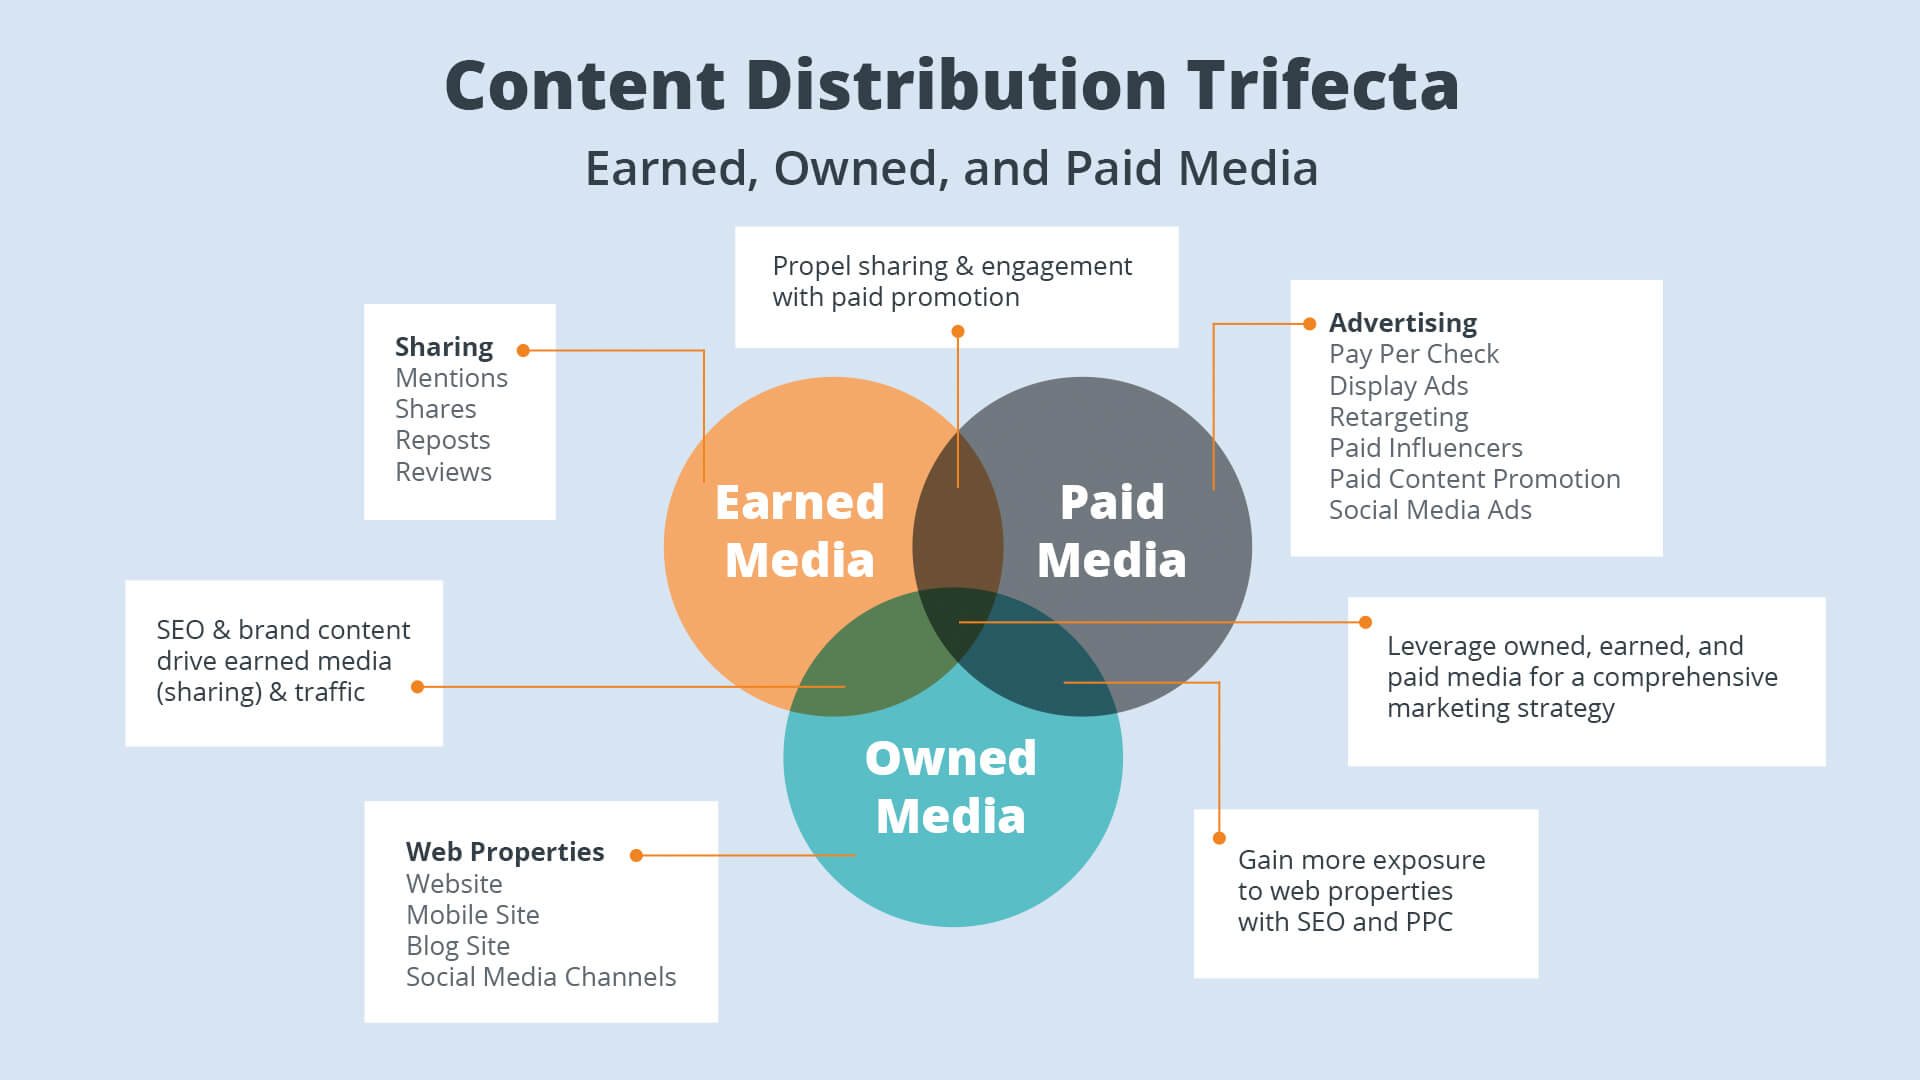 Content-Distribution-Trifecta-1.jpg